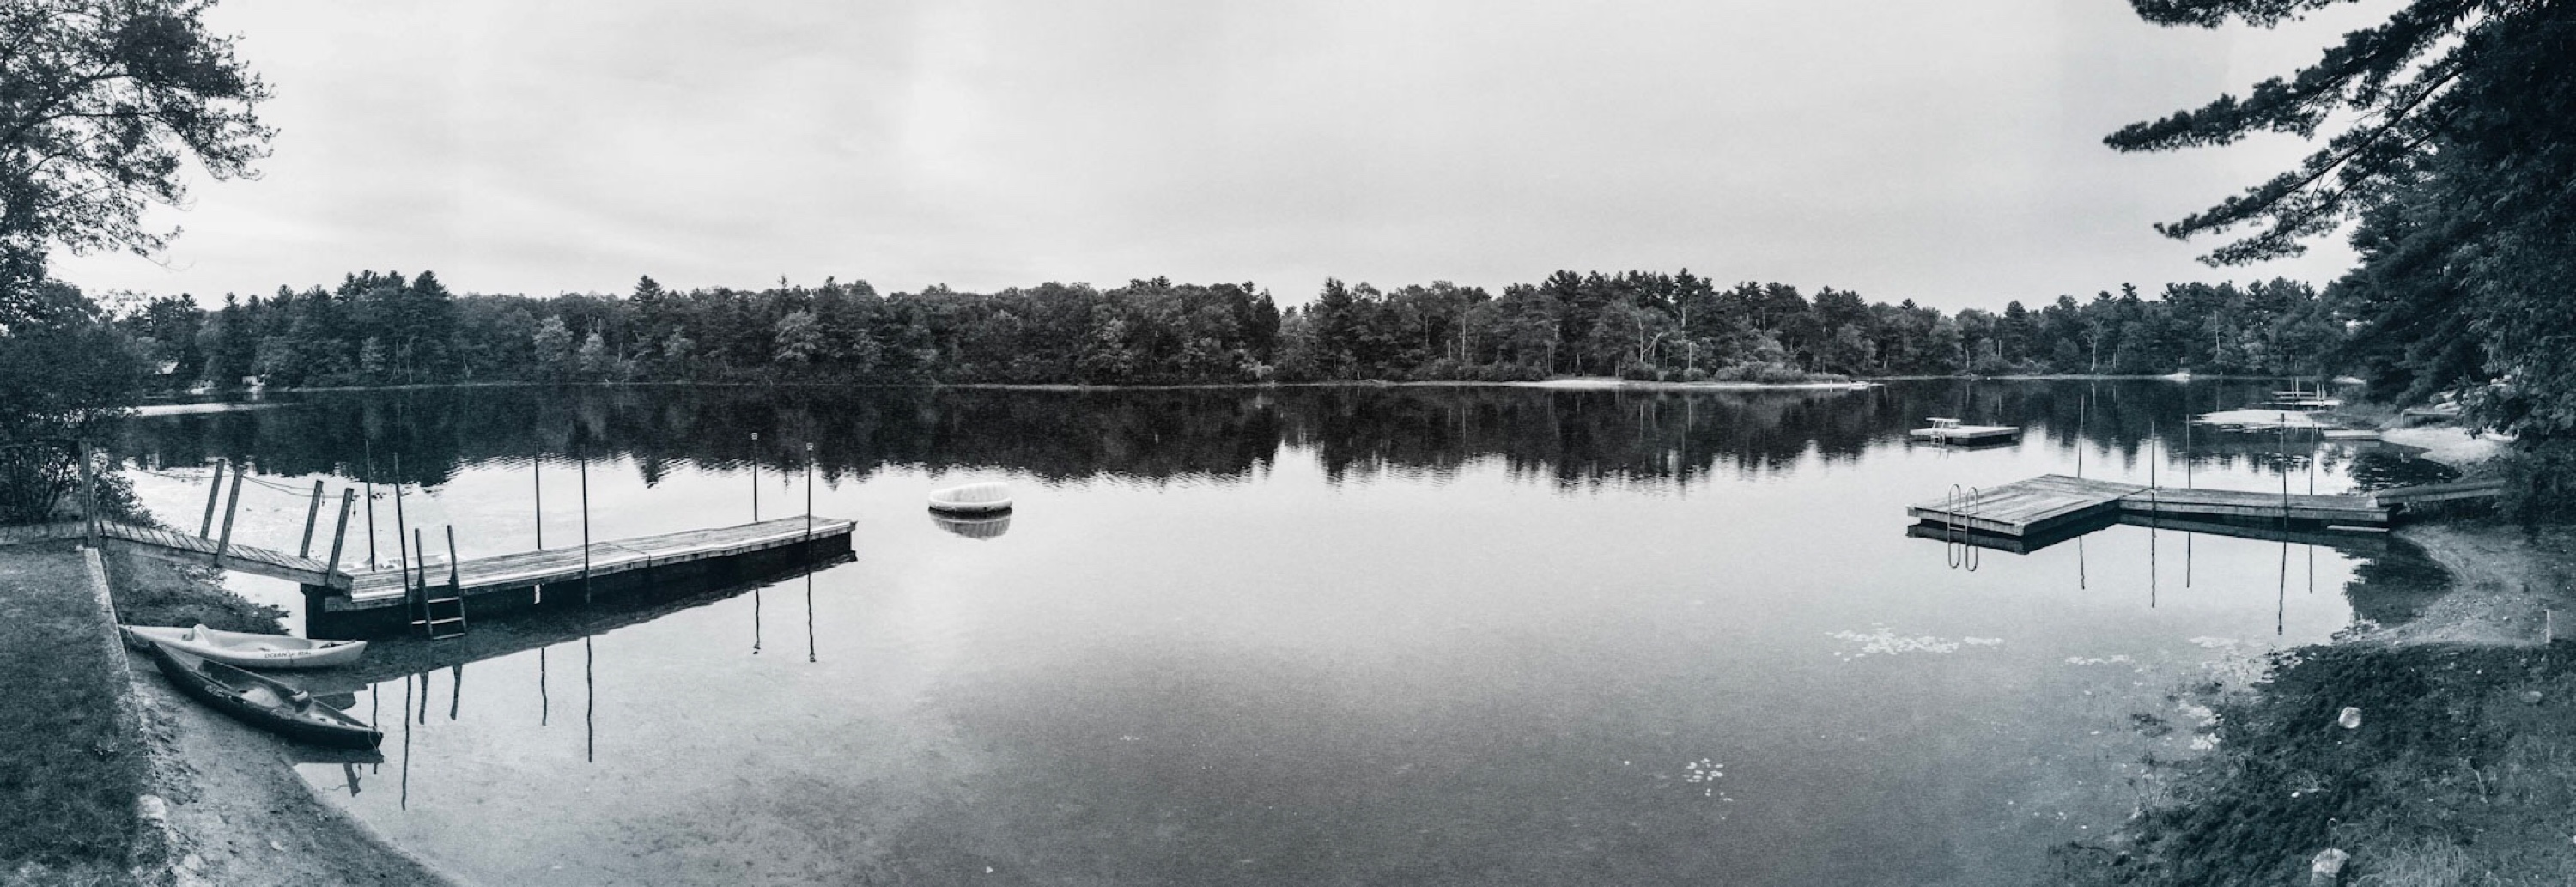 Panoramic Lake at the End of Summer 2016